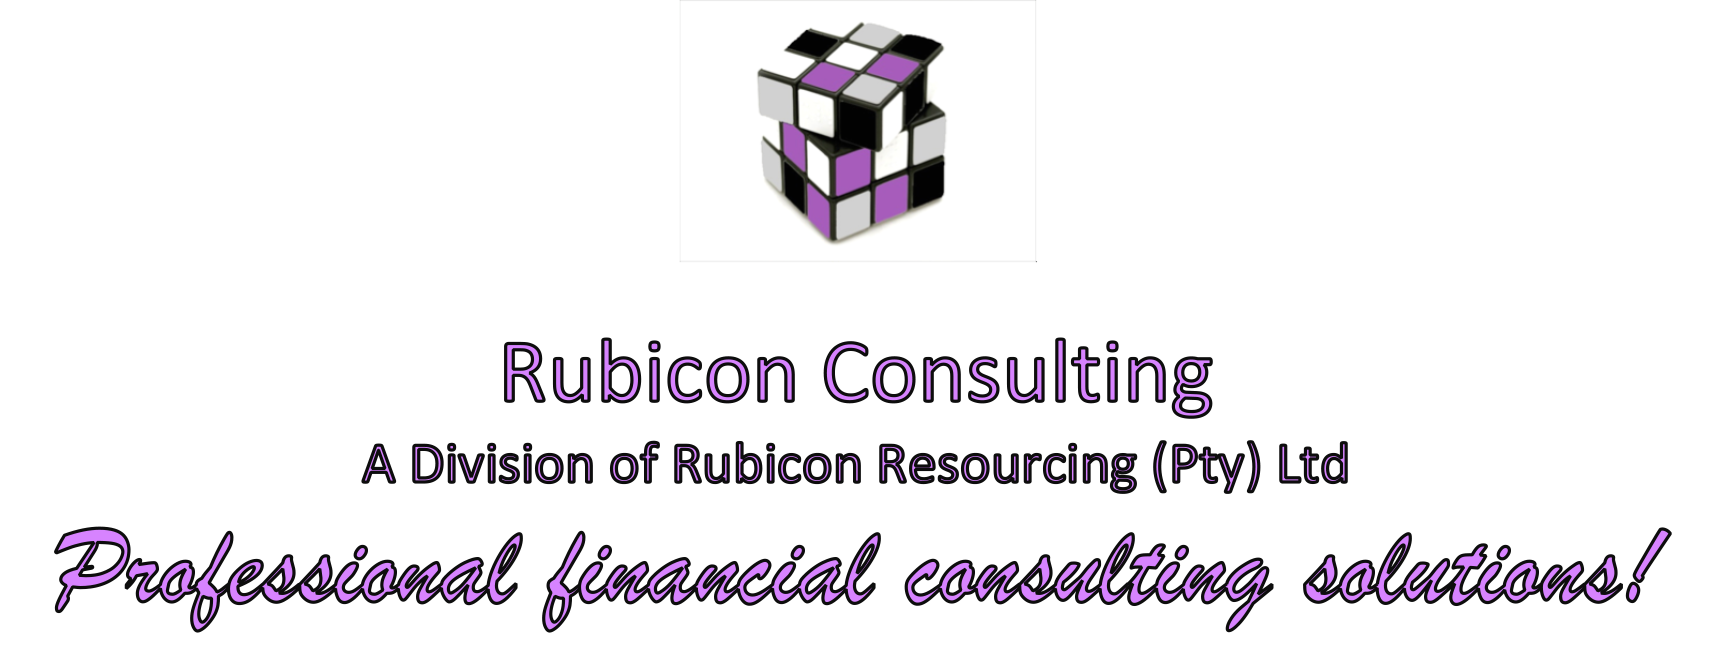 Rubicon Consulting:  A Division of Rubicon Resourcing (Pty) Ltd